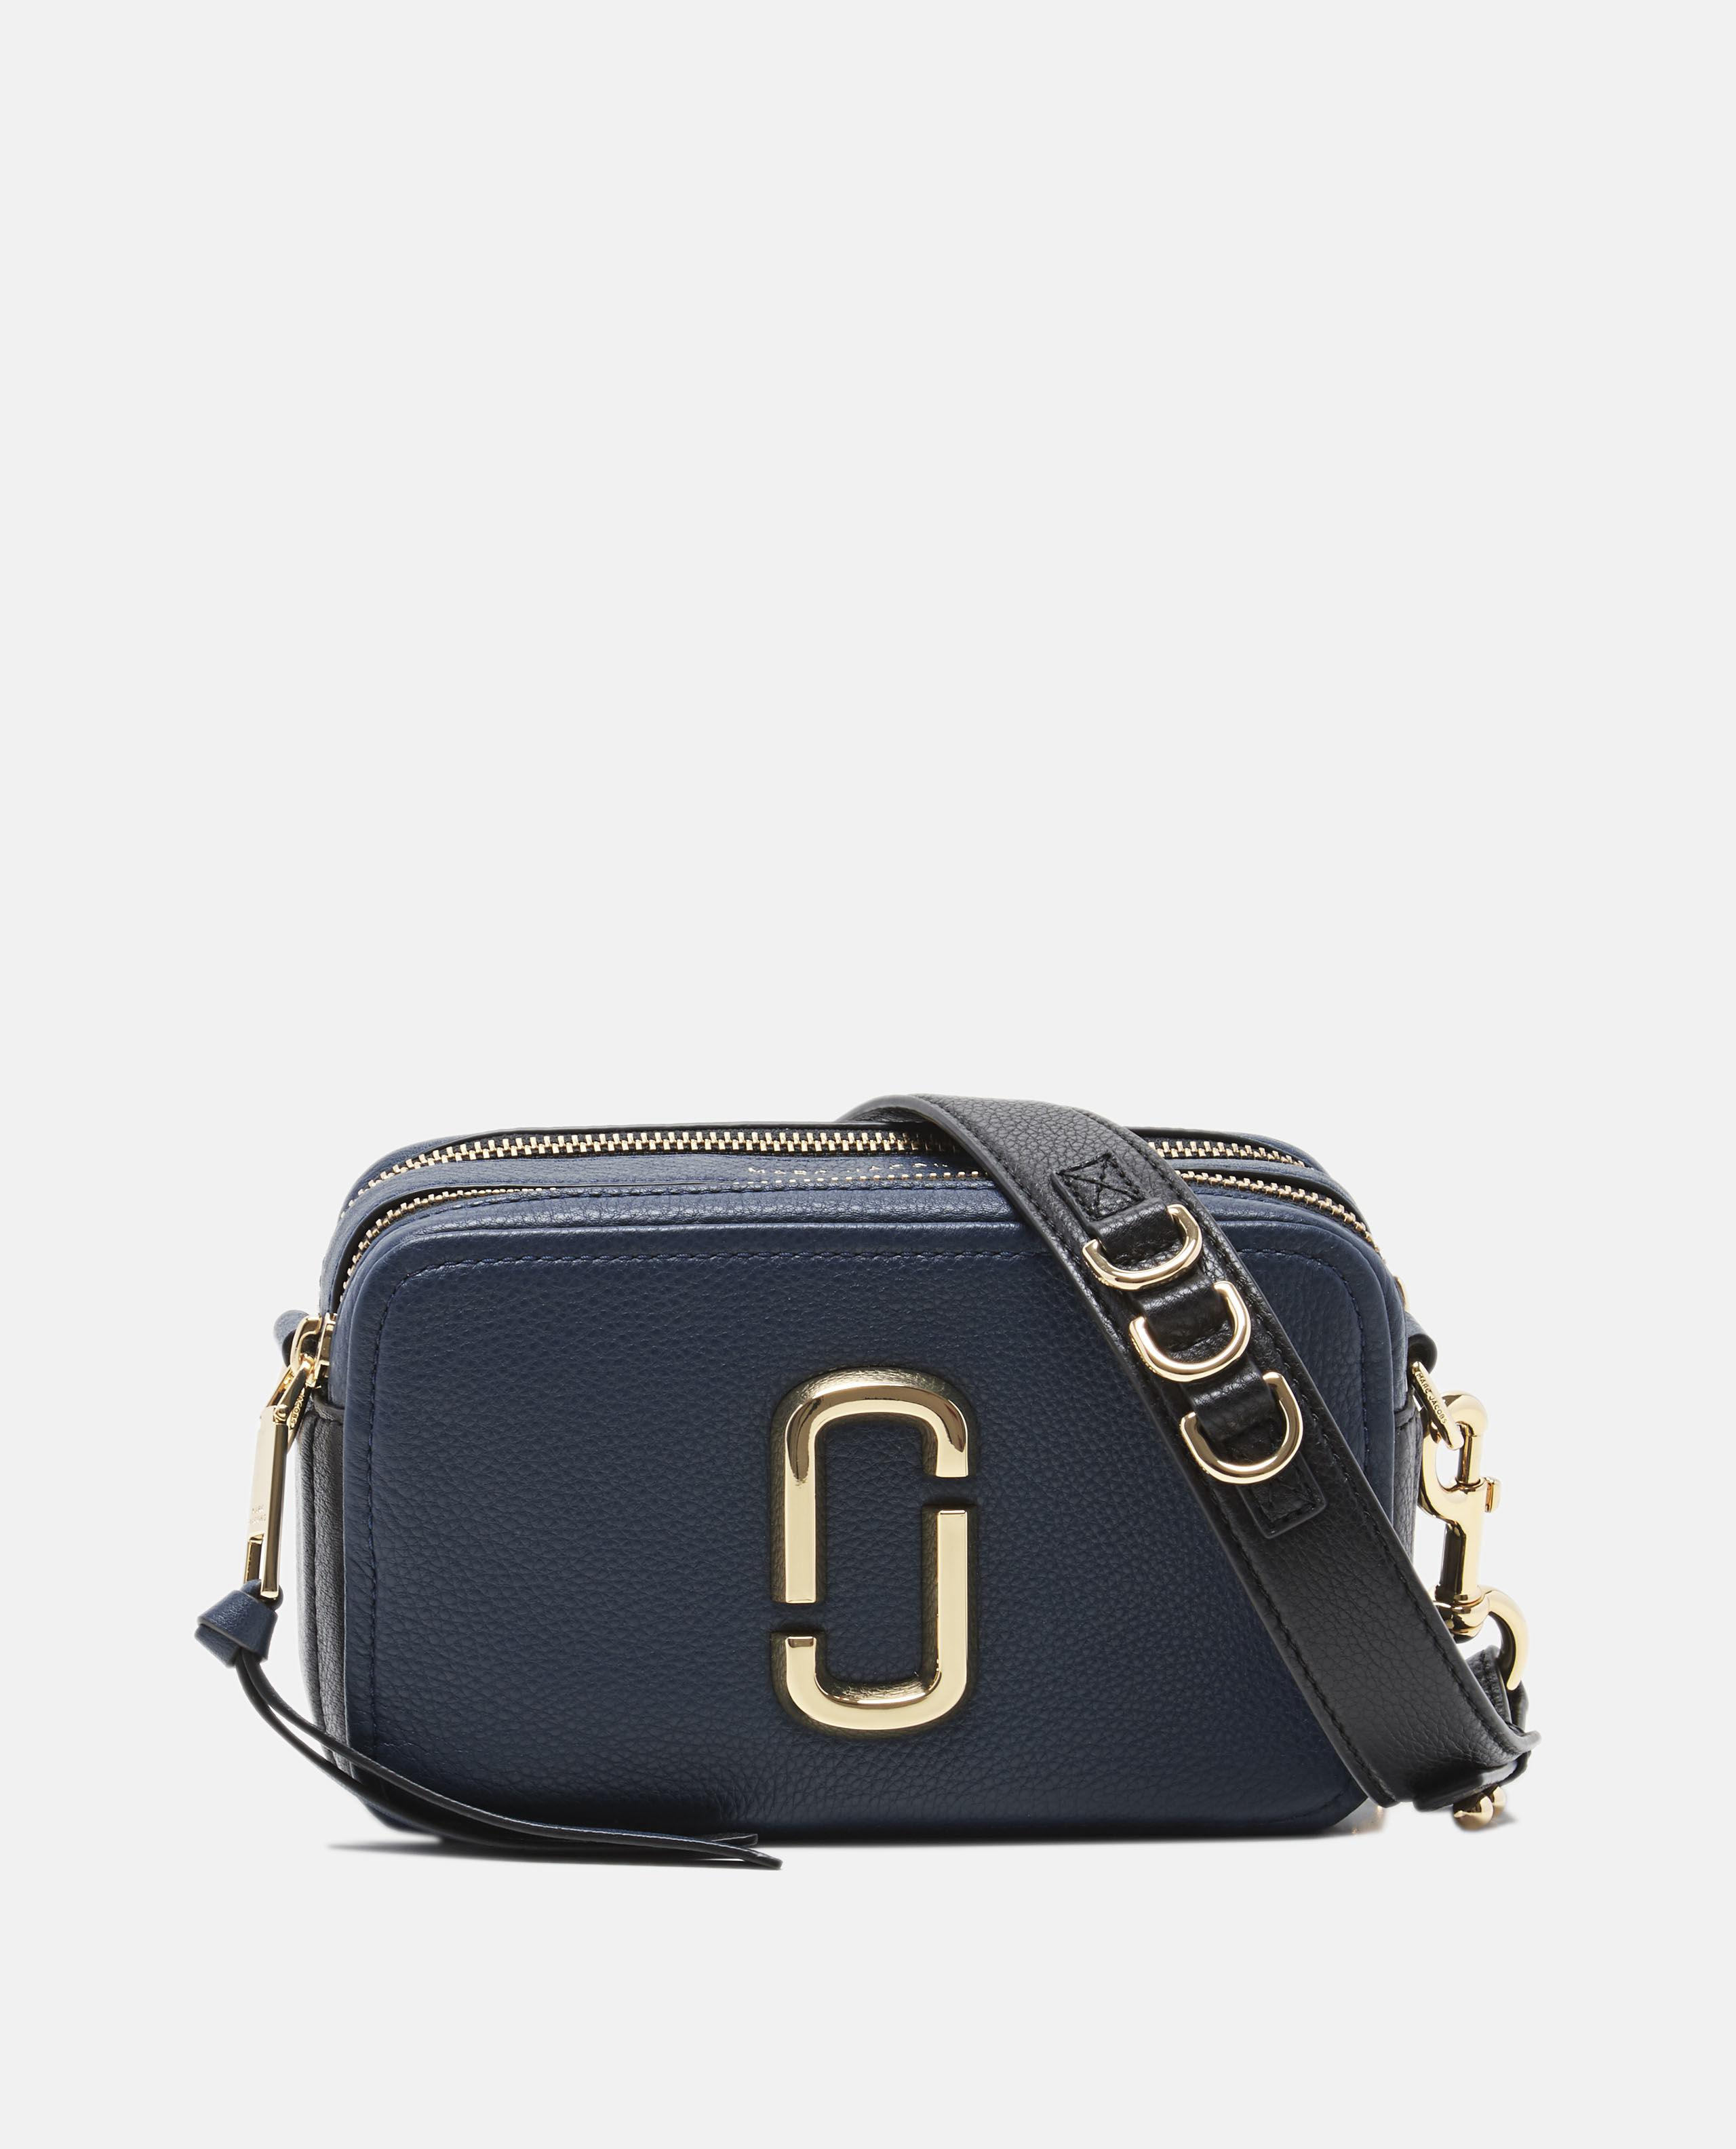 cdb08e3c3719 marc-jacobs-DARK-SLATE-BLUE-The-Softshot-21.jpeg